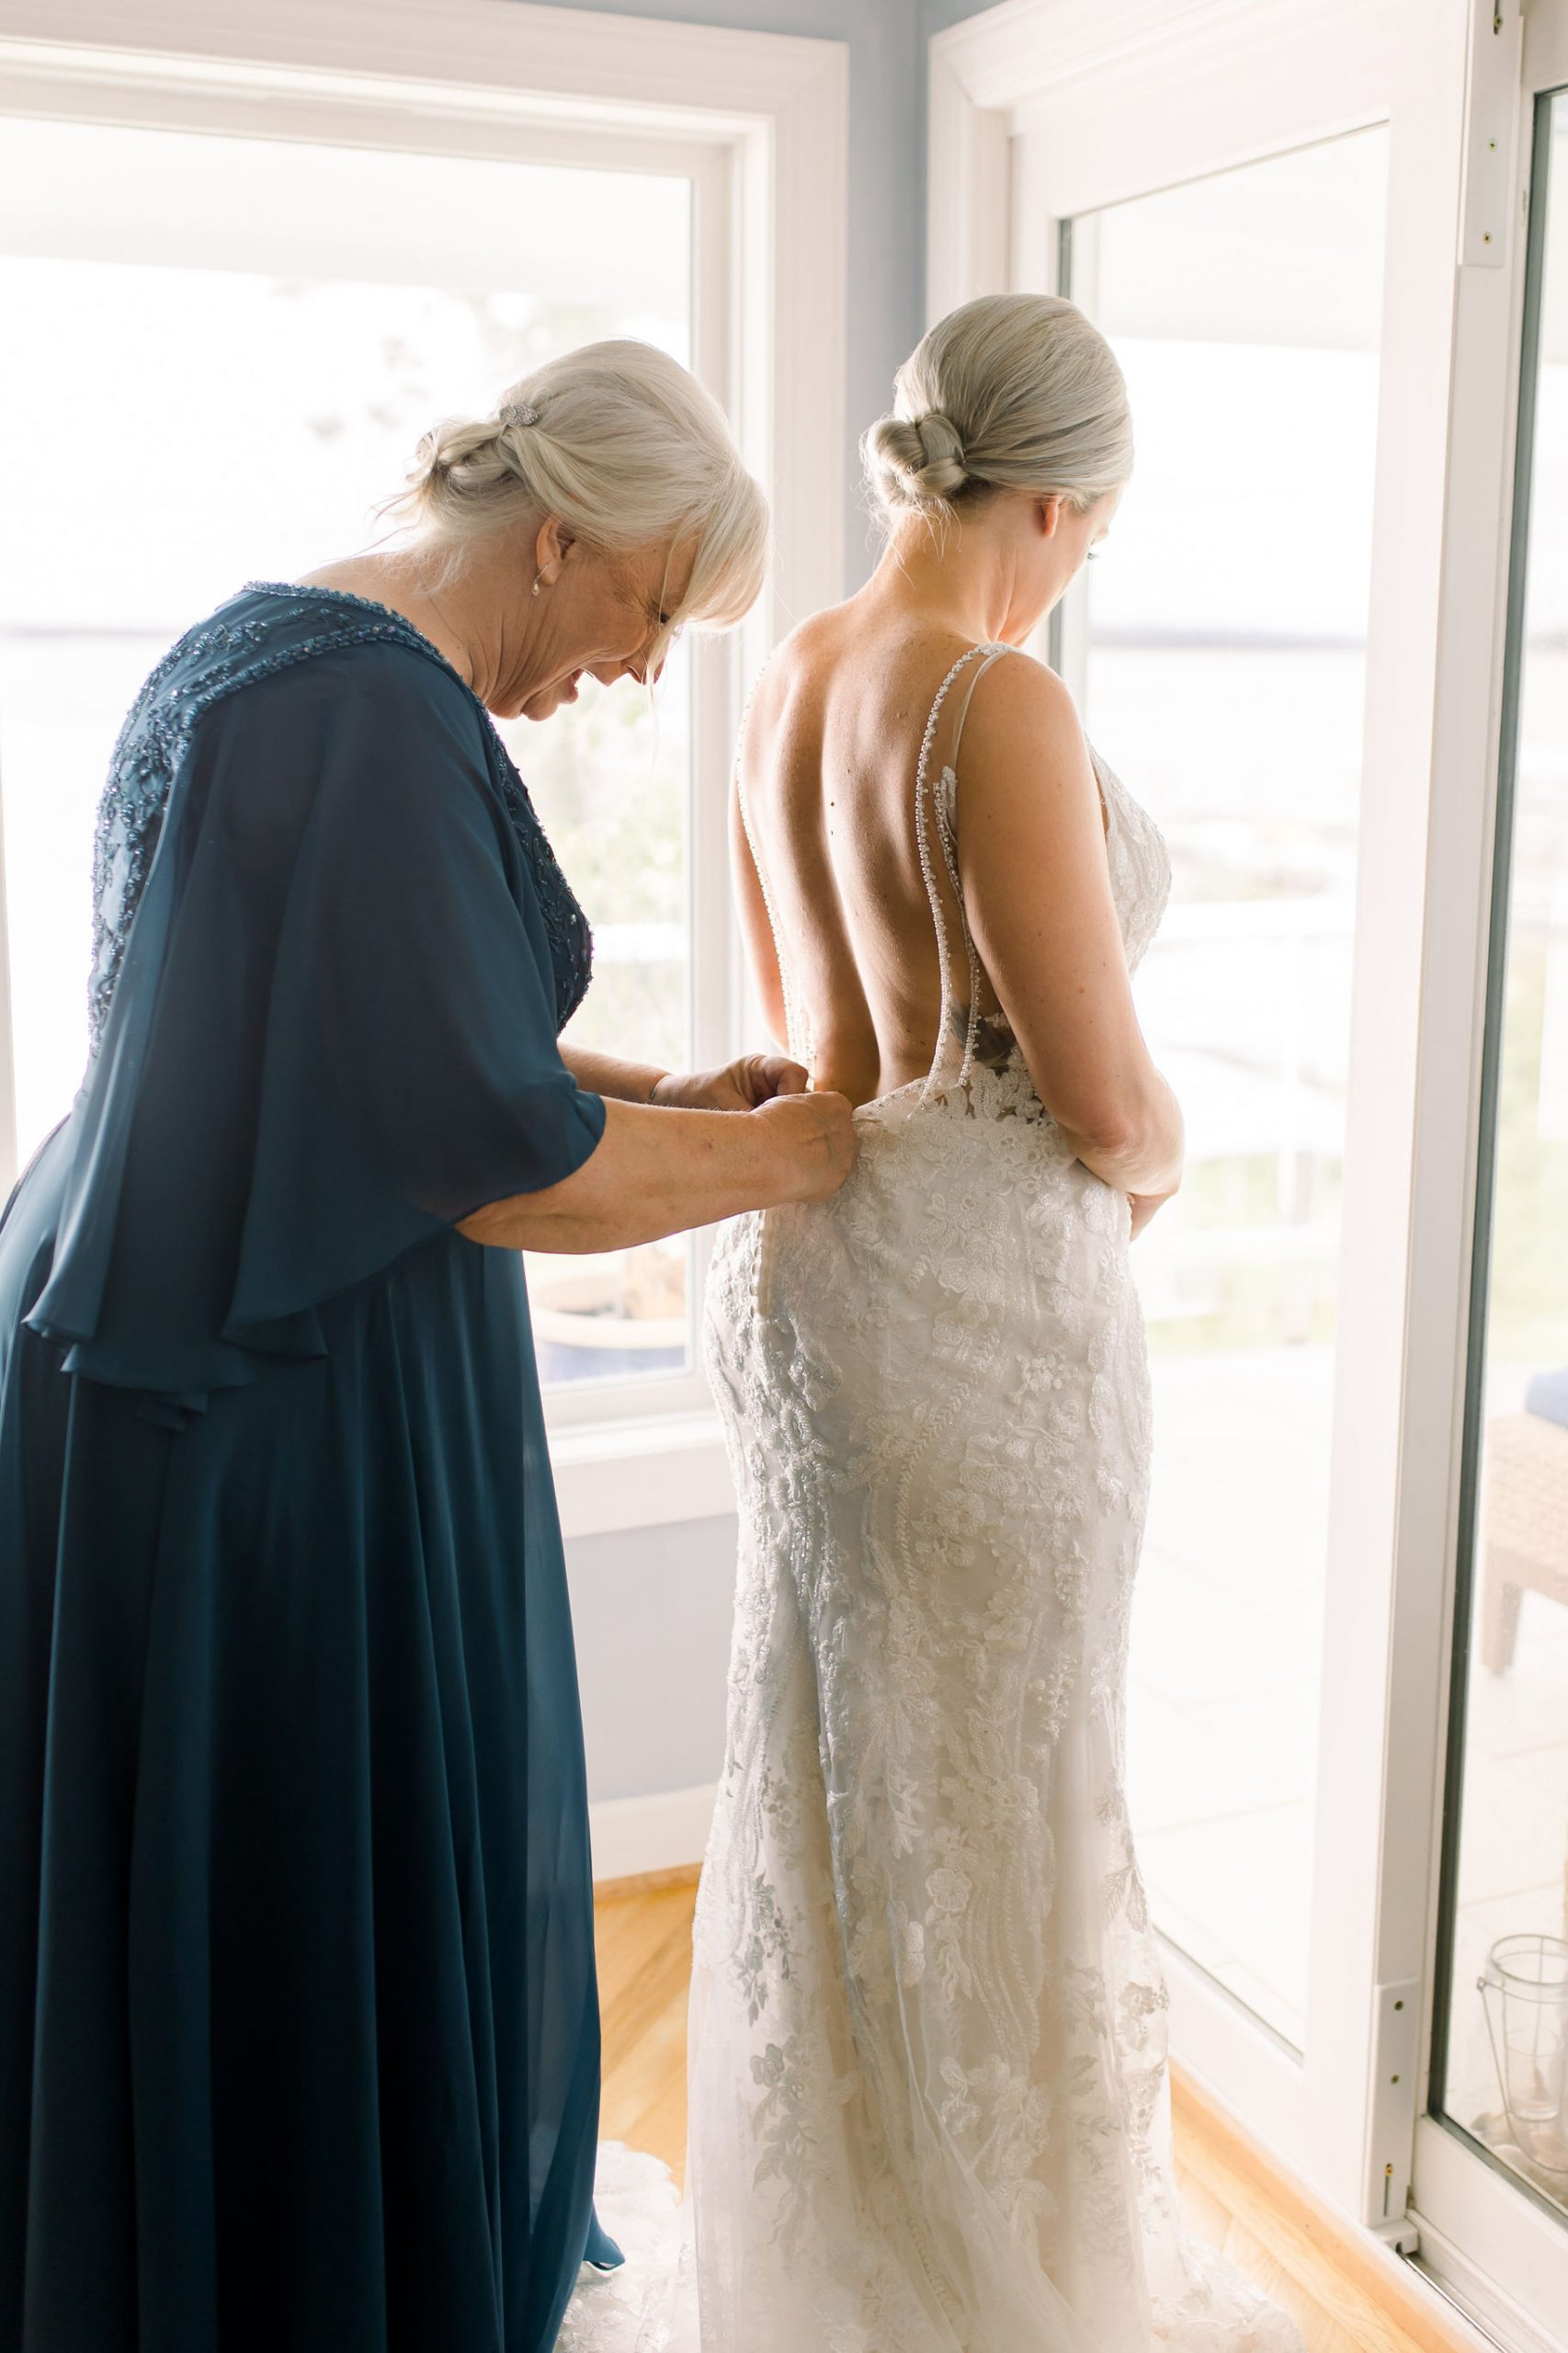 Mother helping bride